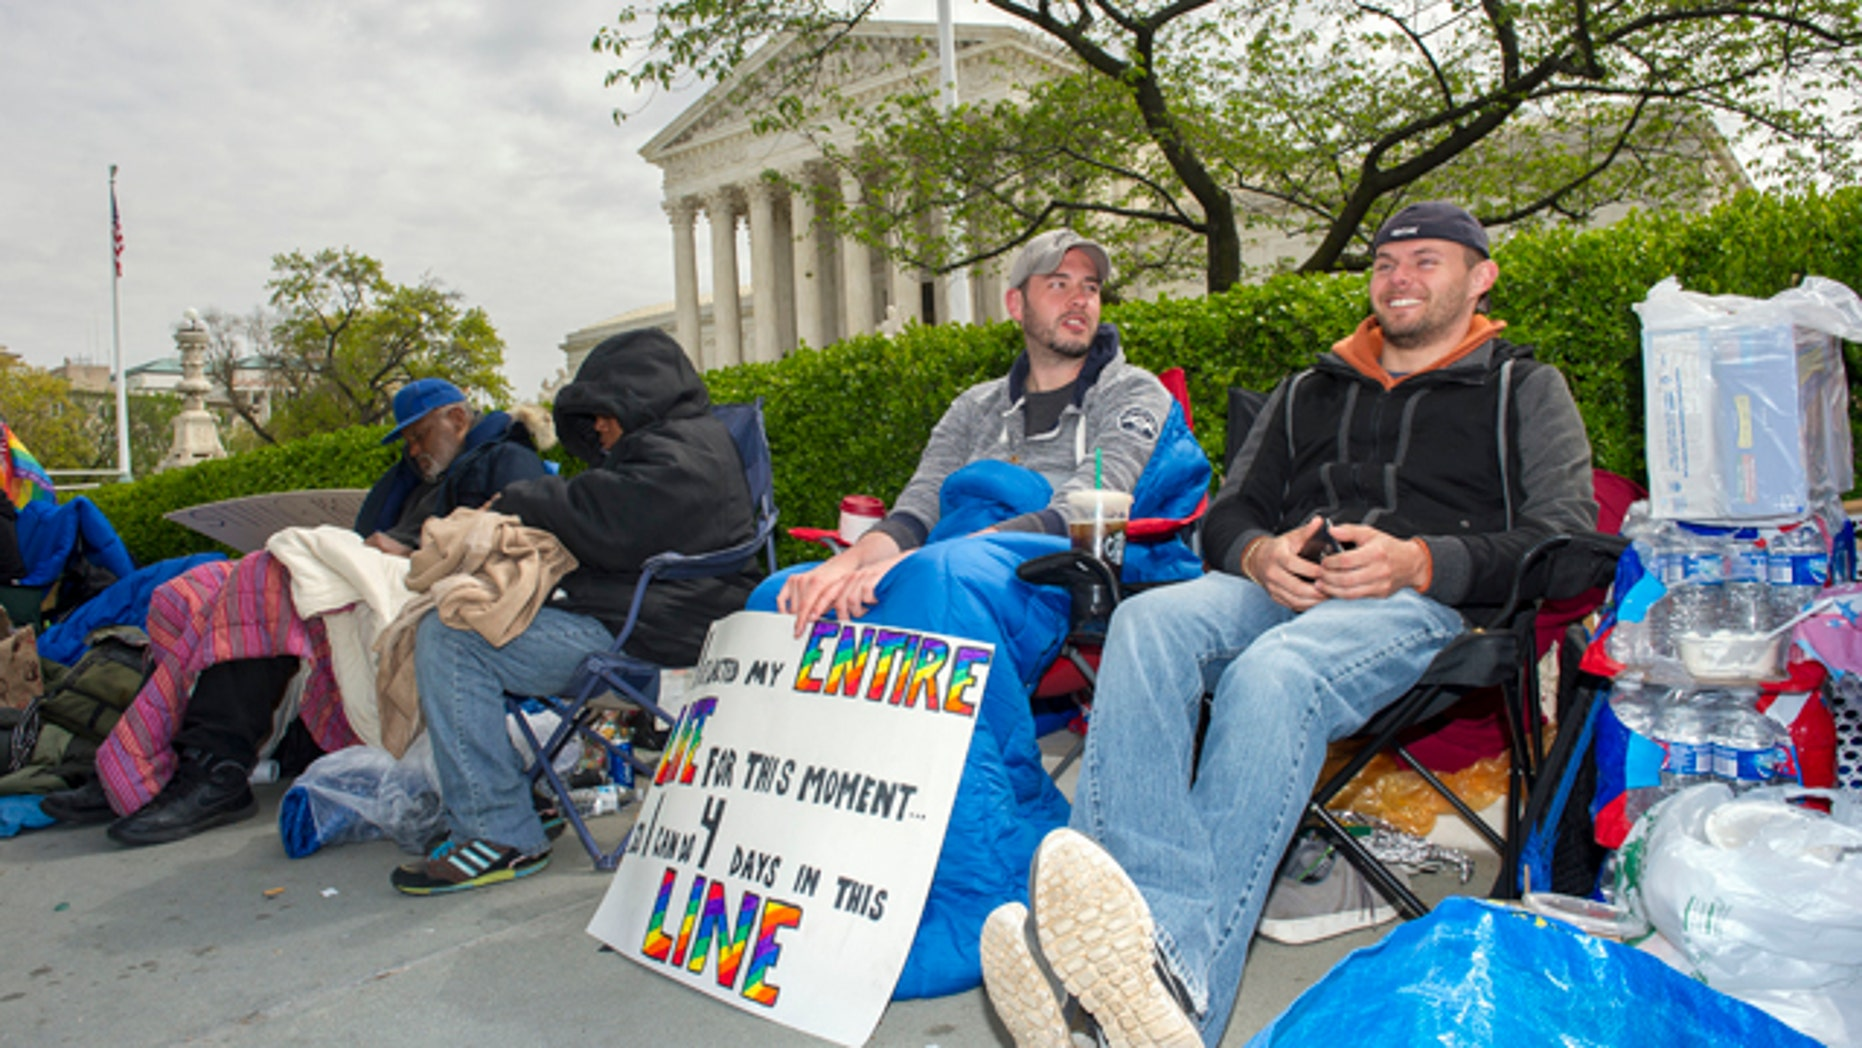 April 27, 2015: Sean Varsho, 28, of Chicago, left, and Brandon Dawson, 26, of Warrenton Va., have been waiting in line for the past three days for a seat for Tuesday's Supreme Court hearing on gay marriage. The opponents of same-sex marriage are urging the court to resist embracing what they see as a radical change in society's view of what constitutes marriage. (AP Photo/Cliff Owen)